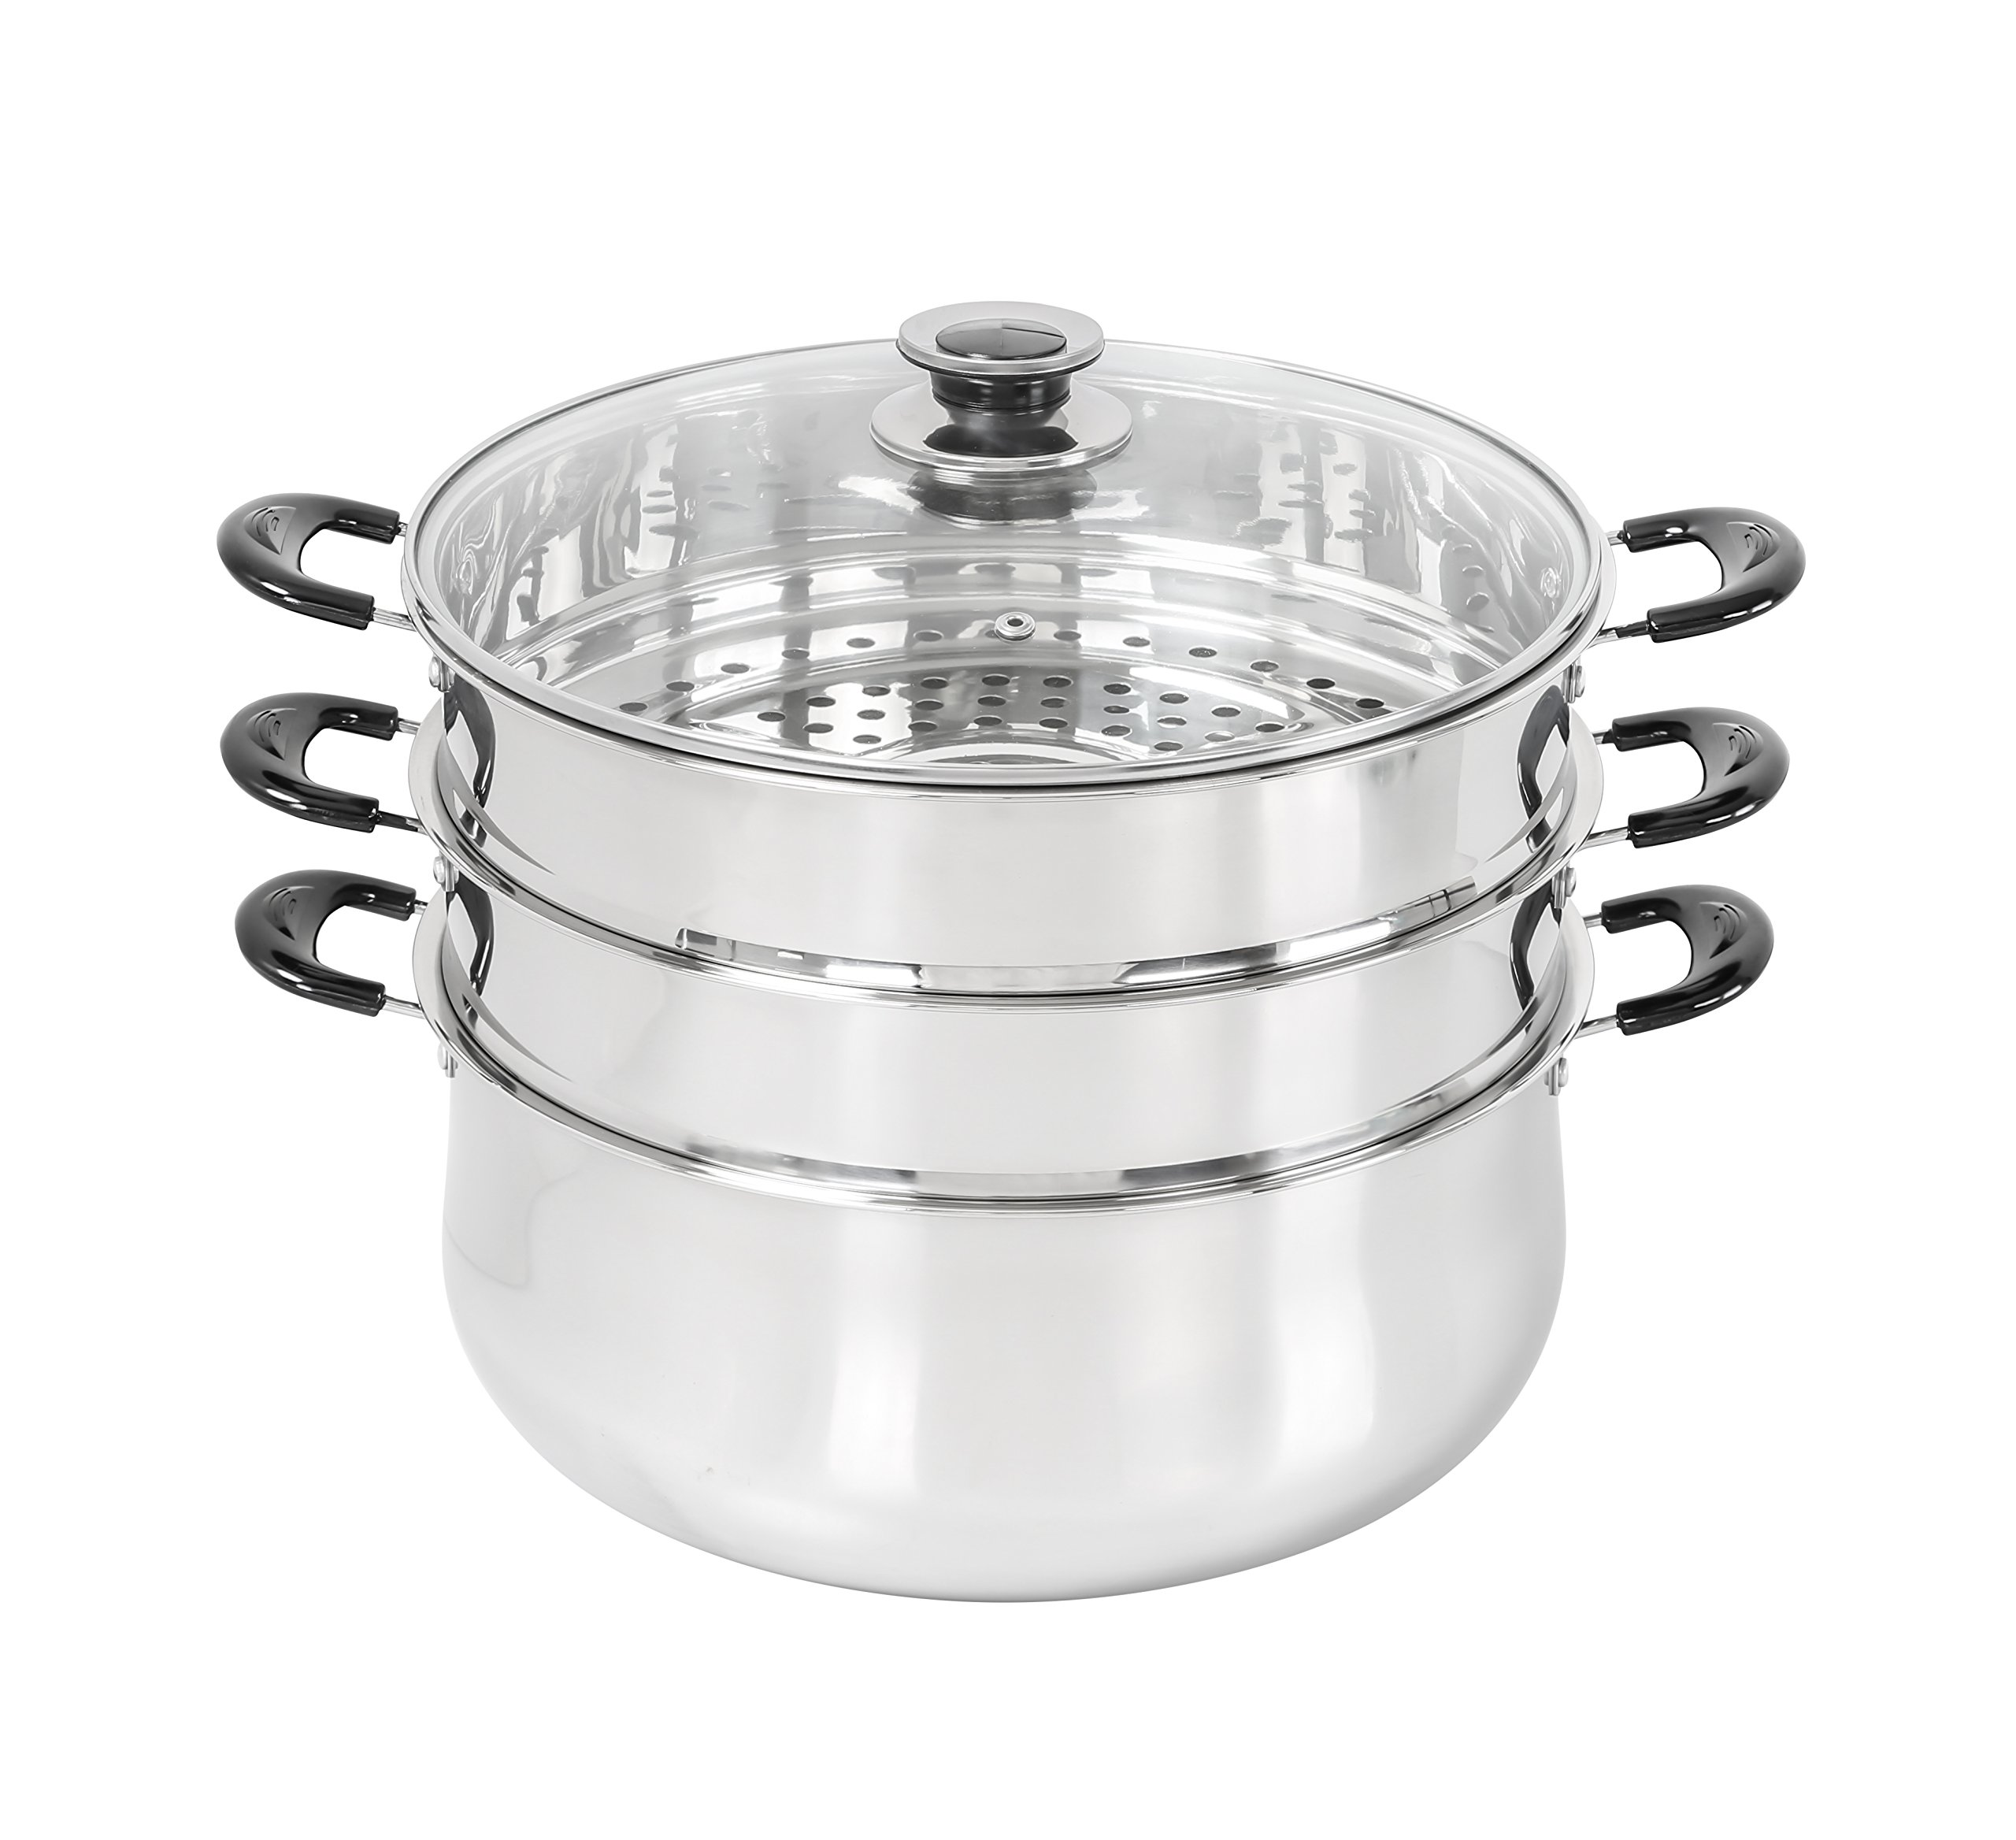 30 CM Stainless Steel 3 Tier Steamer Pot Steaming Cookware by Concord by Concord